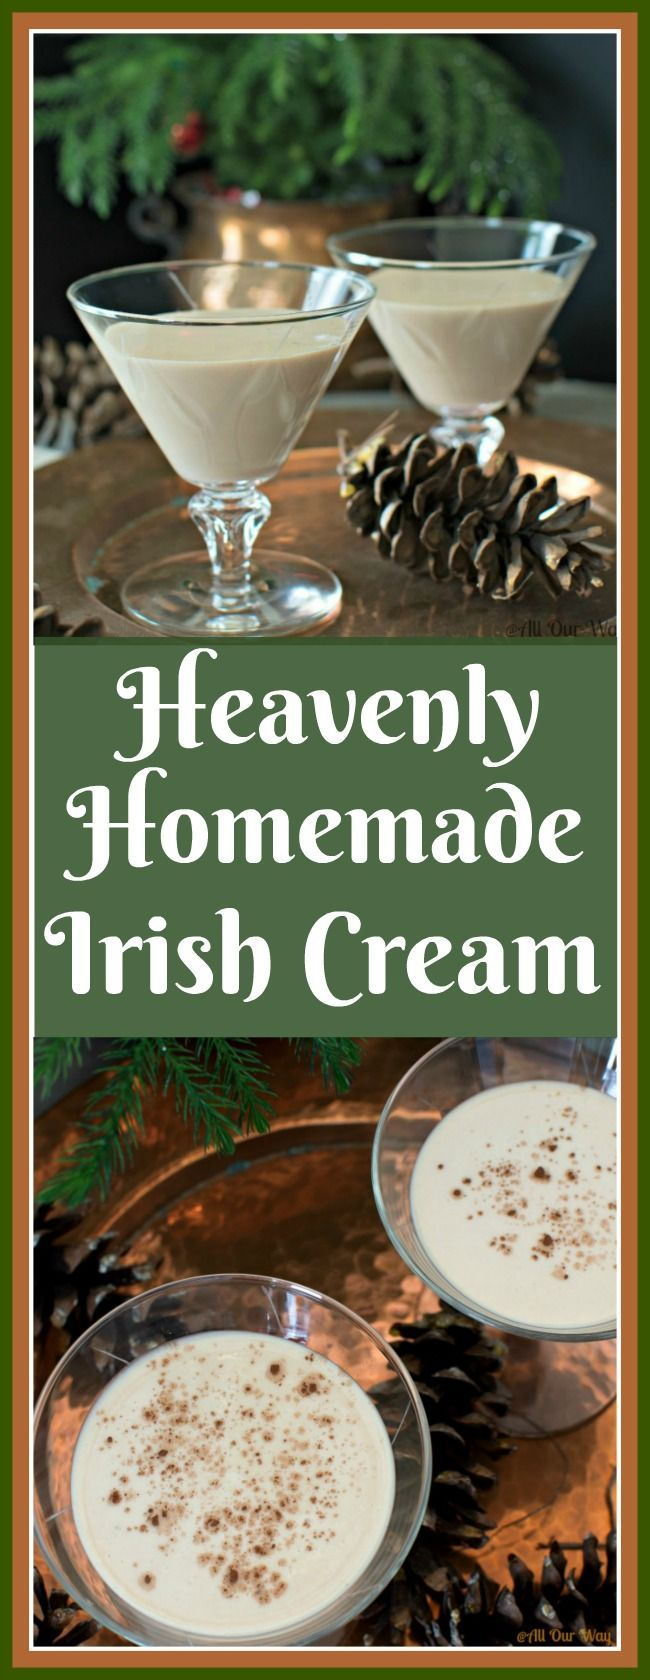 Heavenly Homemade Irish Cream is a decadent dessert in a glass. #irish_cream, #liqueur, #after_dinner_drink, #Bailey's_irish_cream_riff, #cream_liqueur, #allourway.com